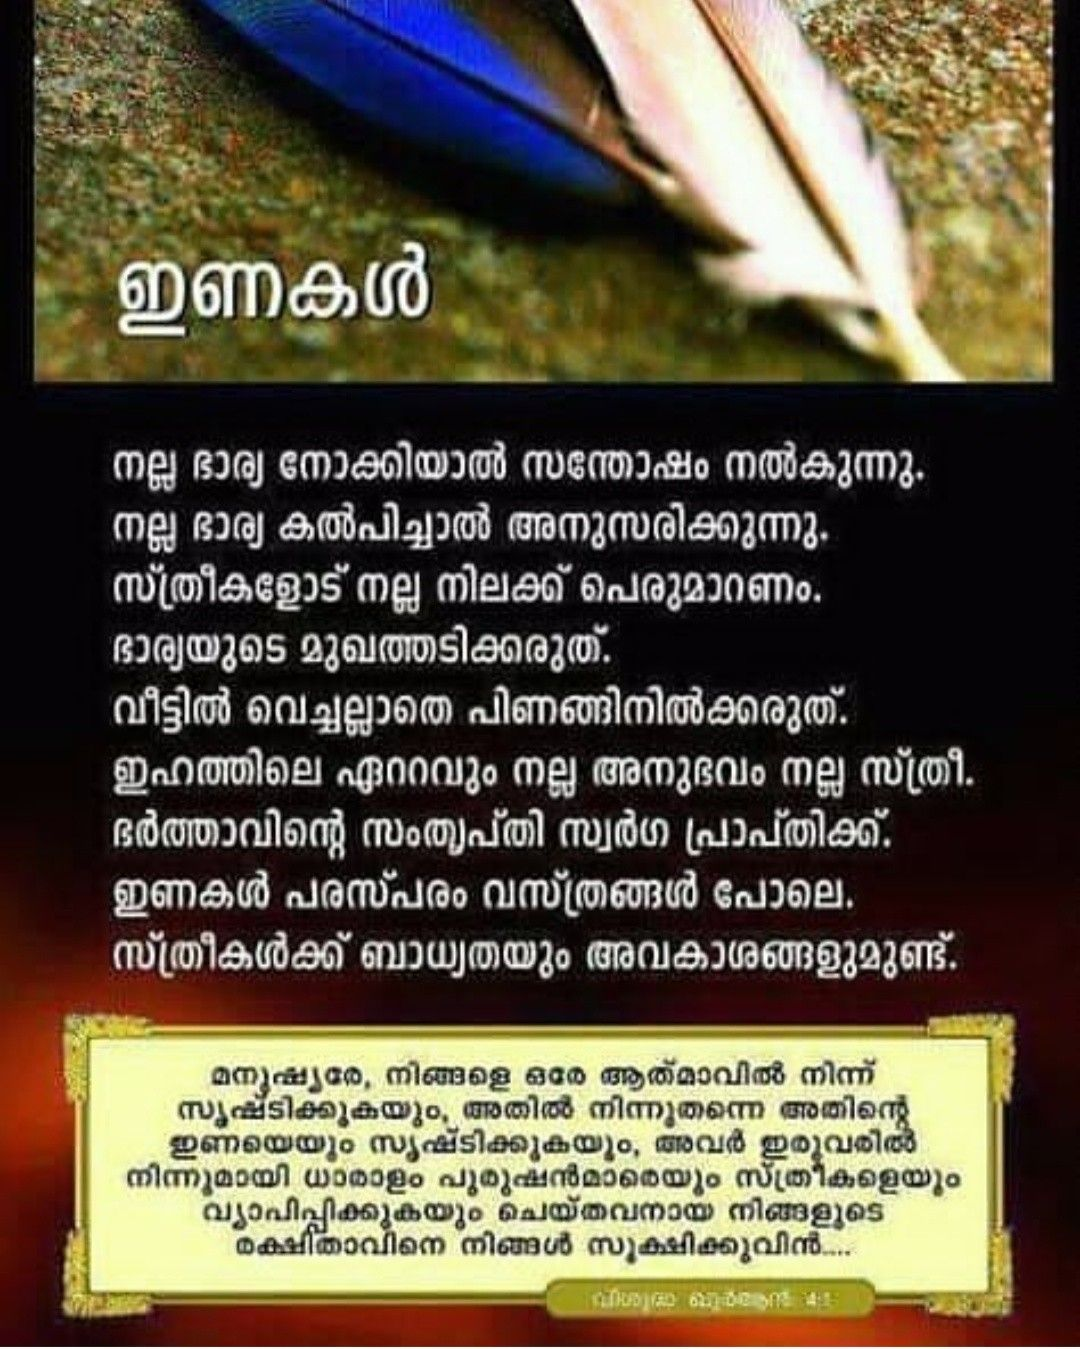 Pin By محمد نوفل بن شرف الدين كونجو On മലയ ള Marriage Quotes Malayalam Quotes Quotes